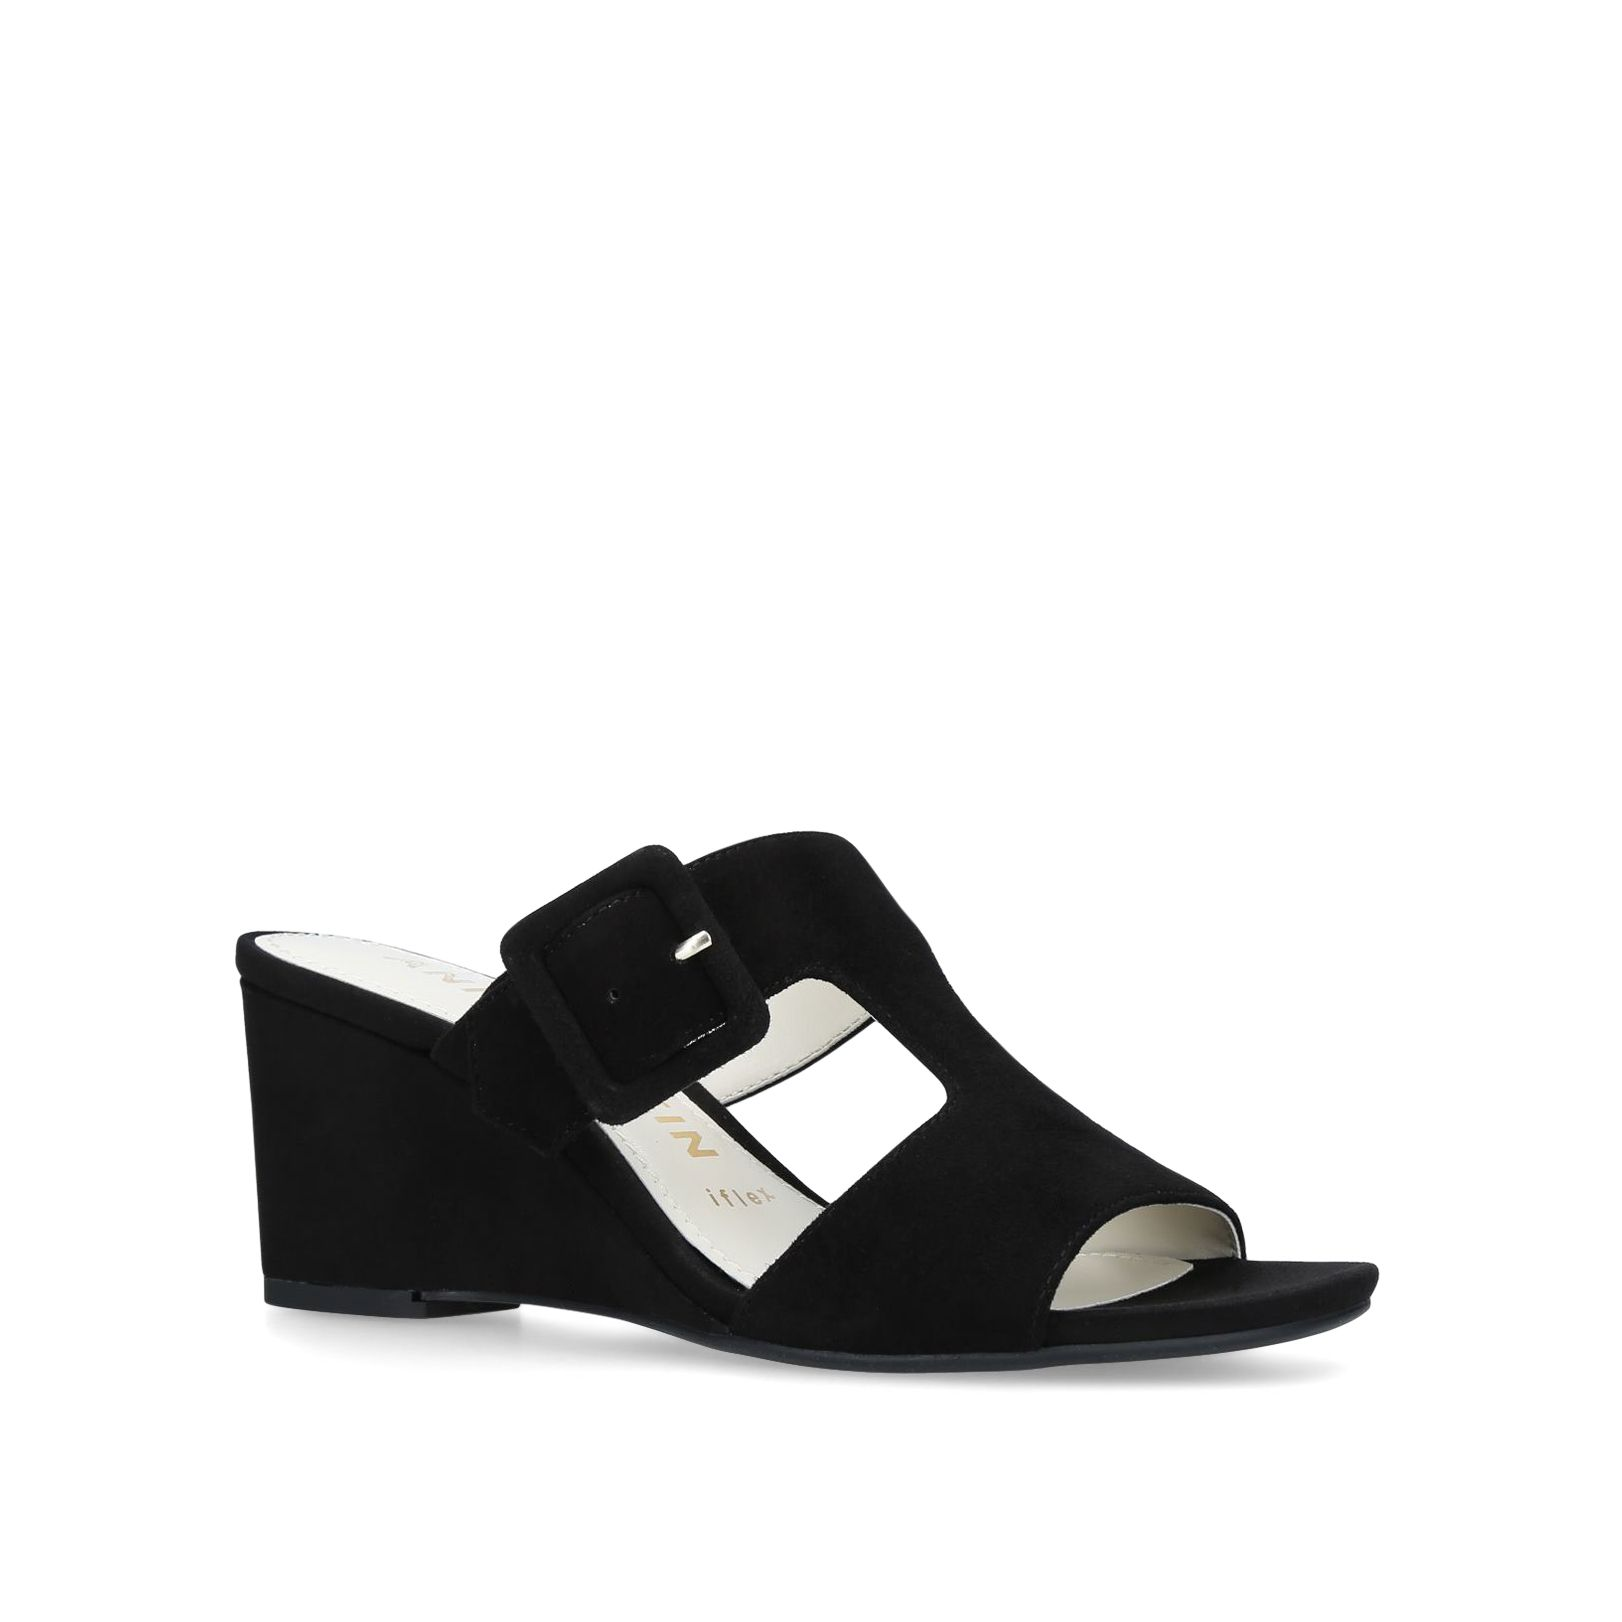 Anne Klein Nilli Sandals, Black